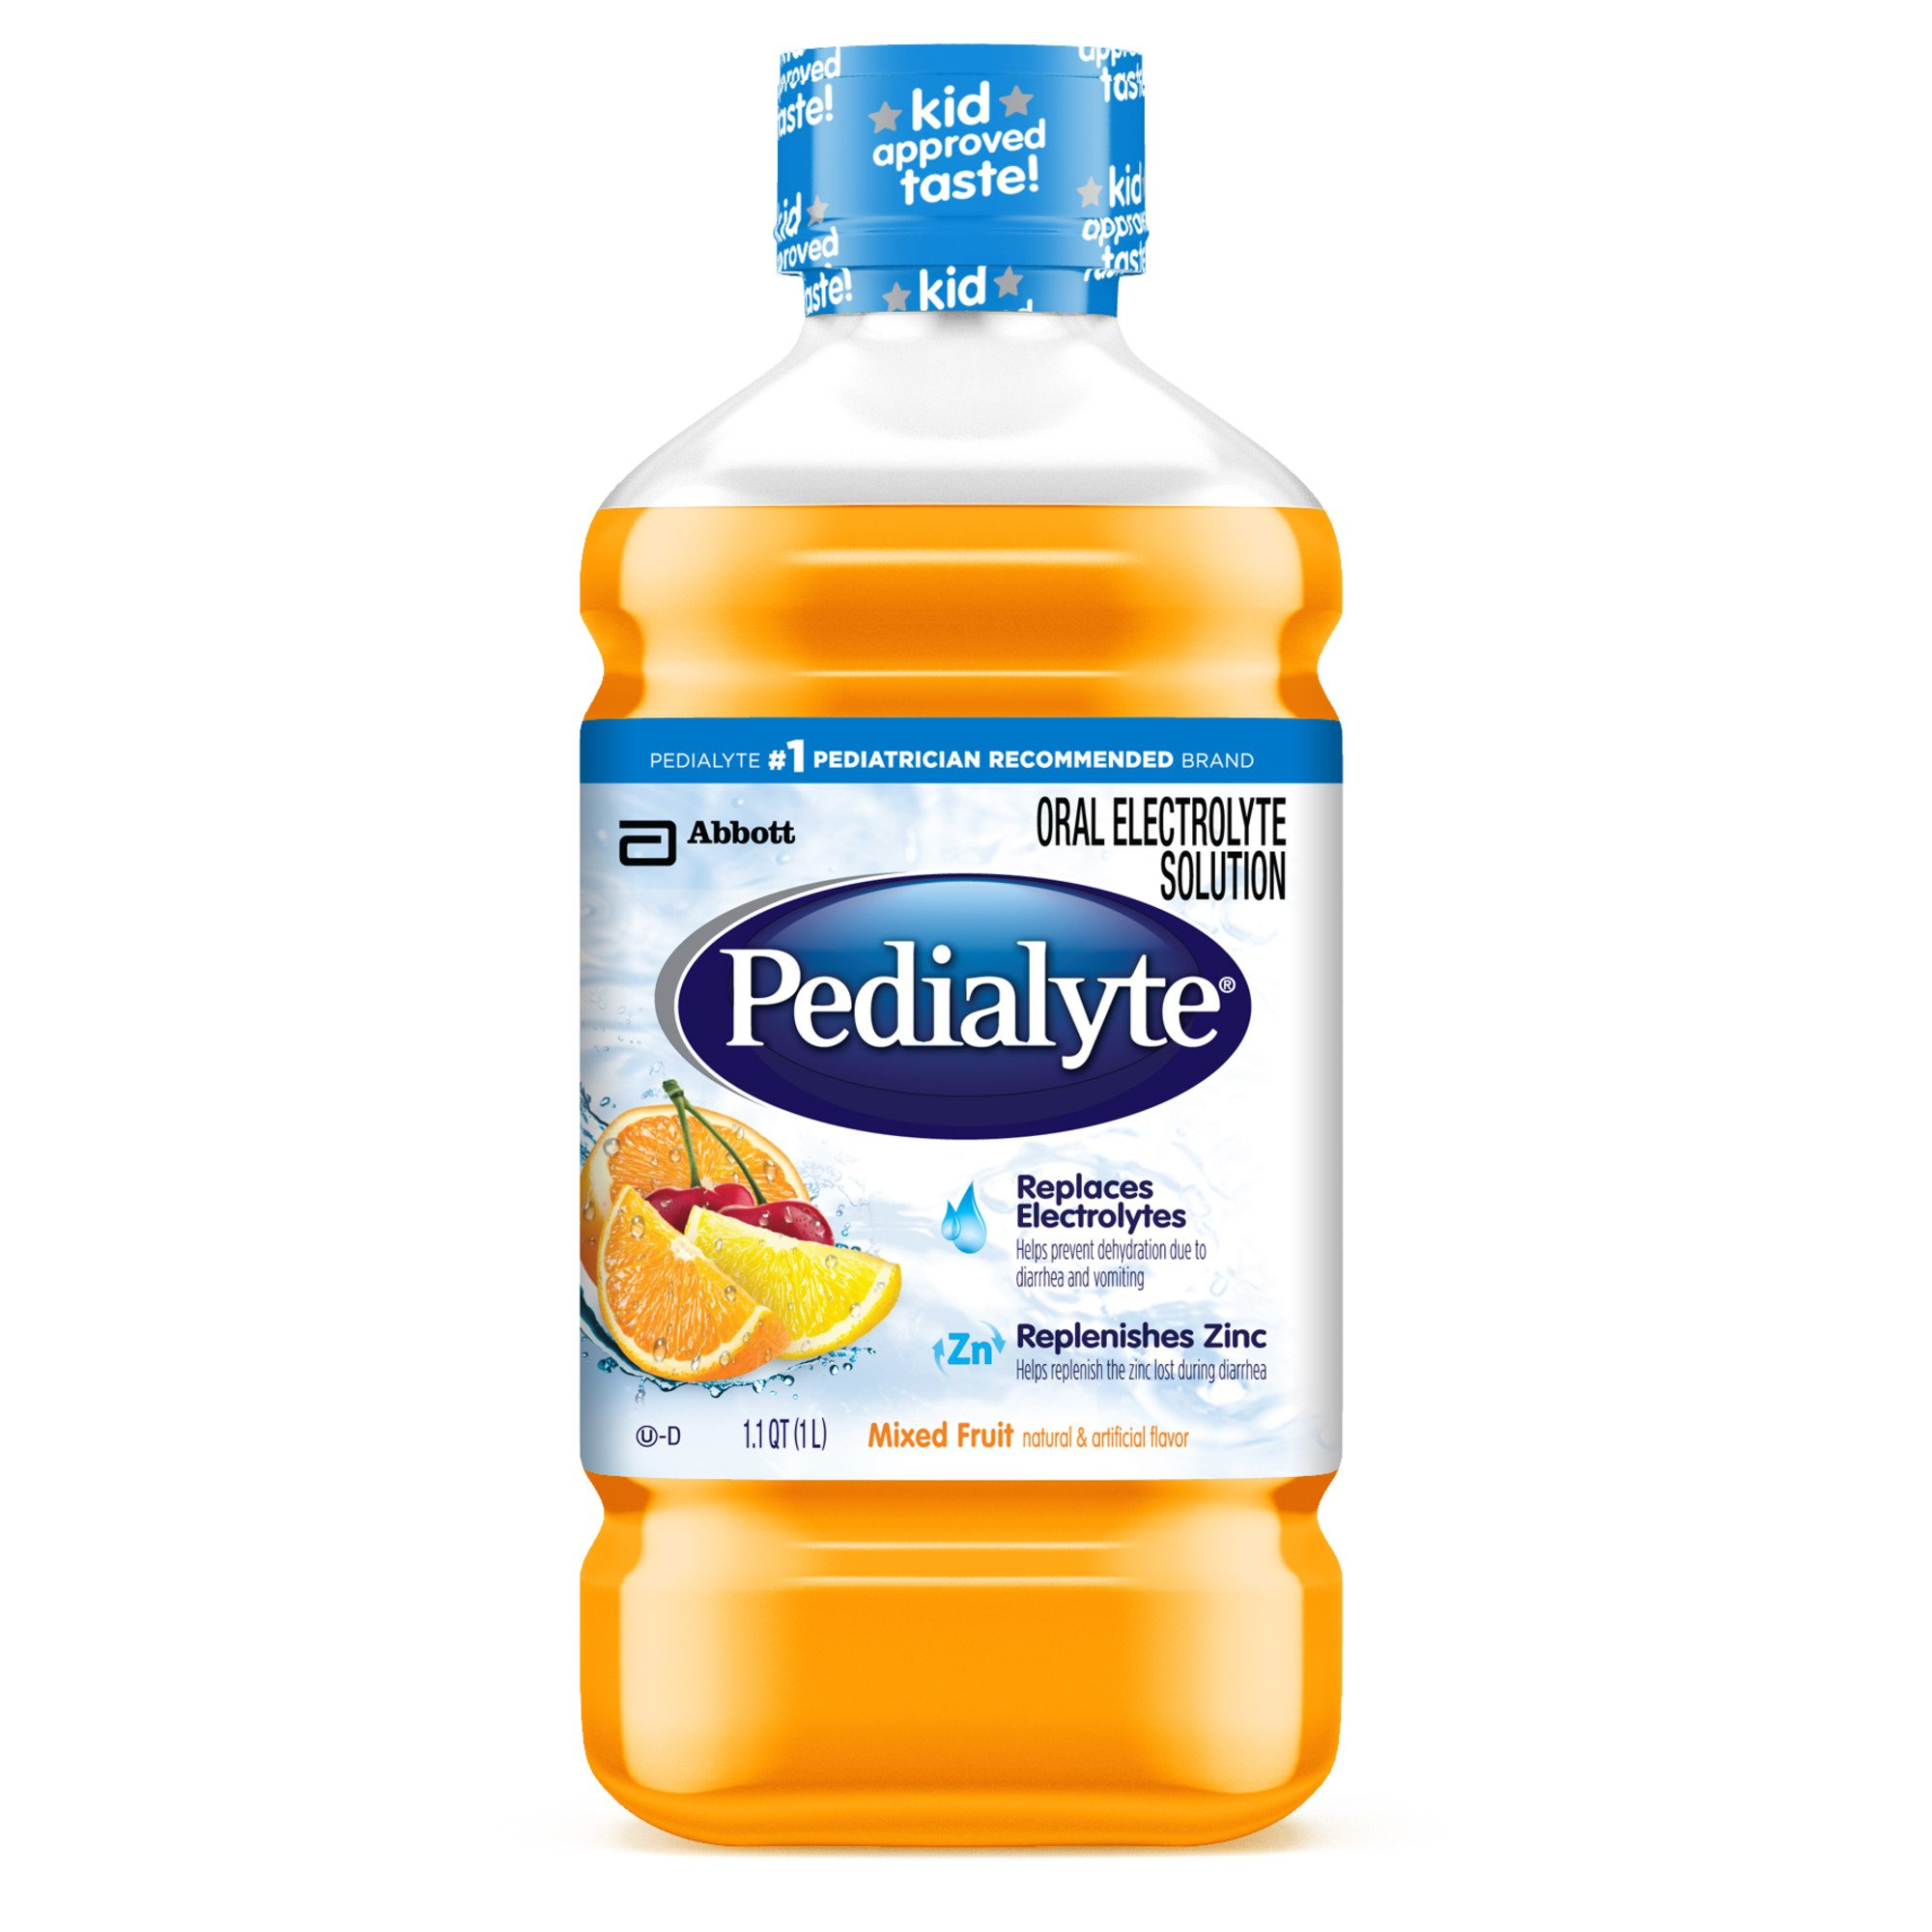 Pedialyte Electrolyte Solution, Electrolyte Drink, Mixed Fruit, Liquid, 1-L (Pack of 8)